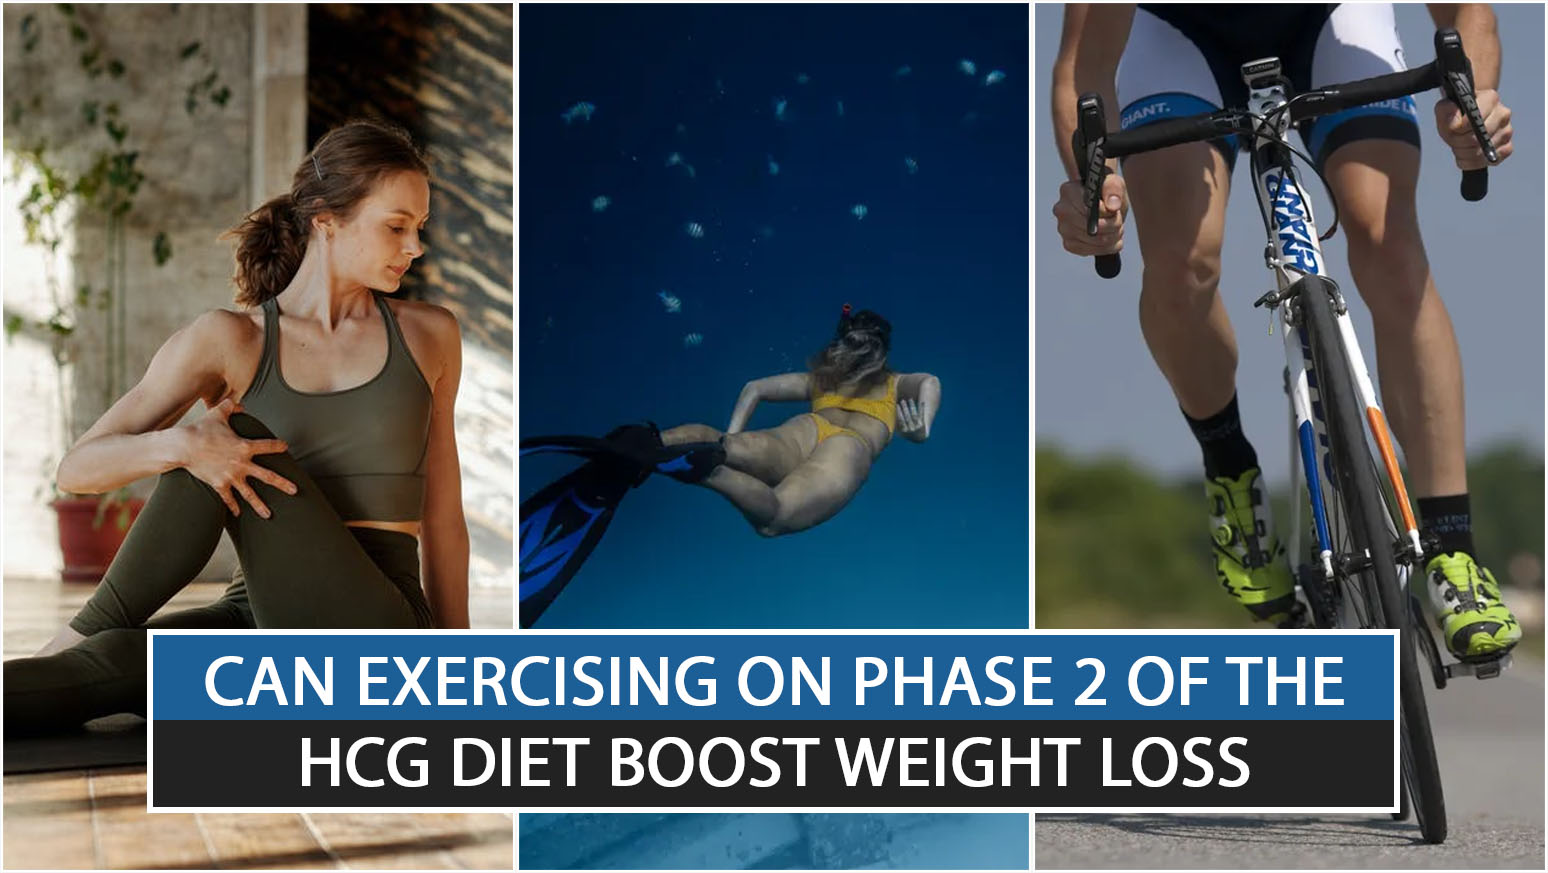 CAN EXERCISING ON PHASE 2 OF THE HCG DIET BOOST WEIGHT LOSS?